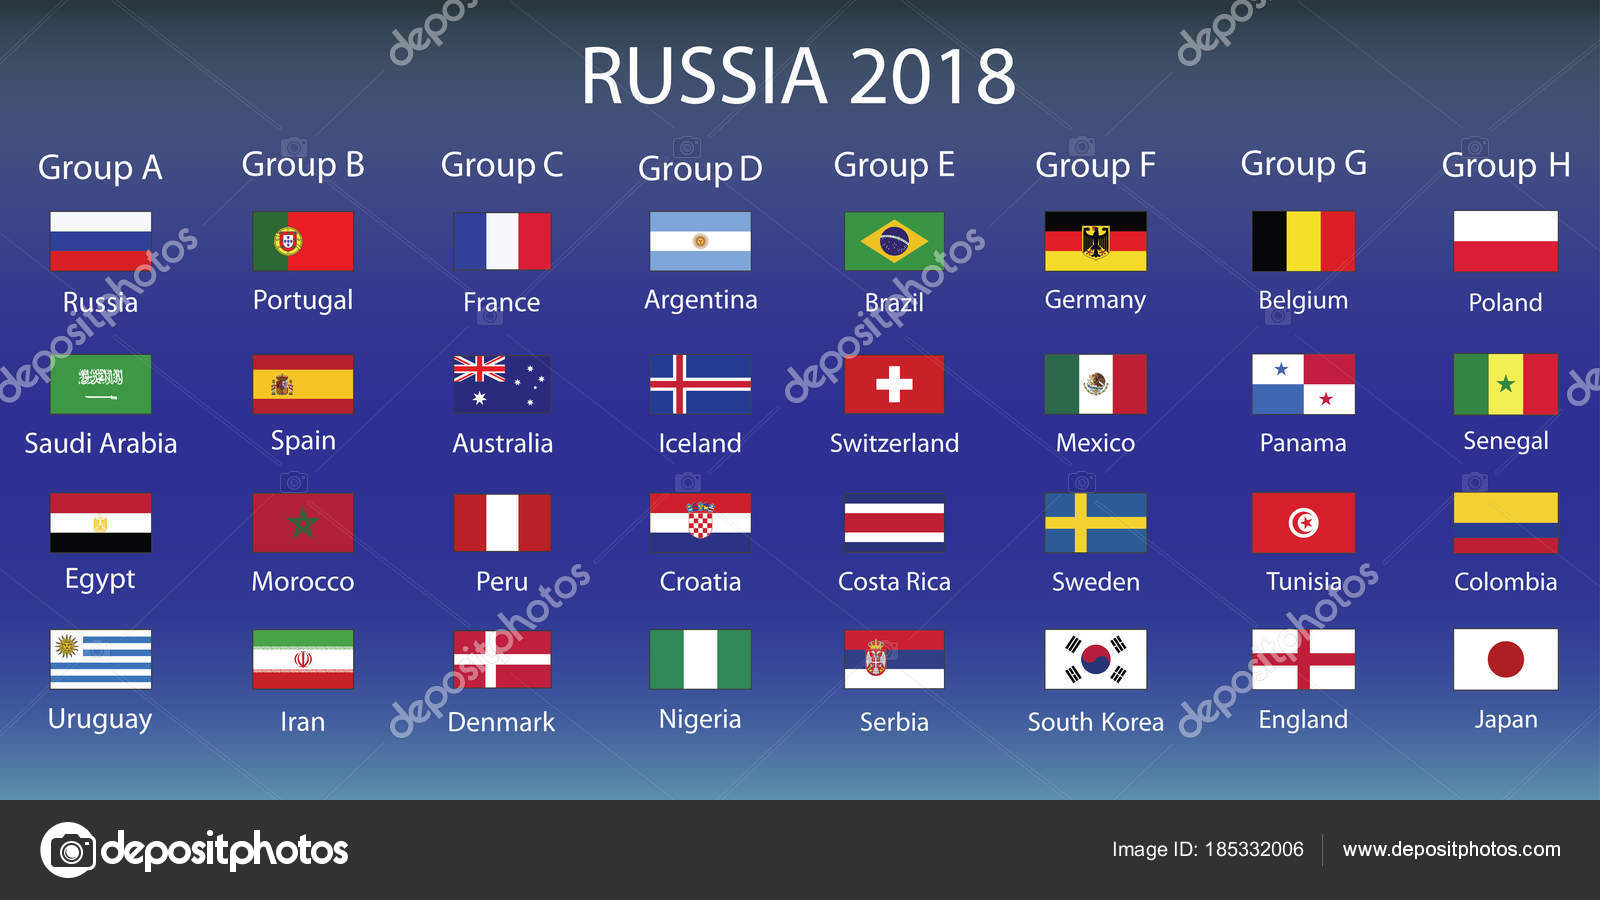 Russia 2018 Fixture >> infographic about FIFA World Cup Russia 2018 — Stock Vector © naum100 #185332006